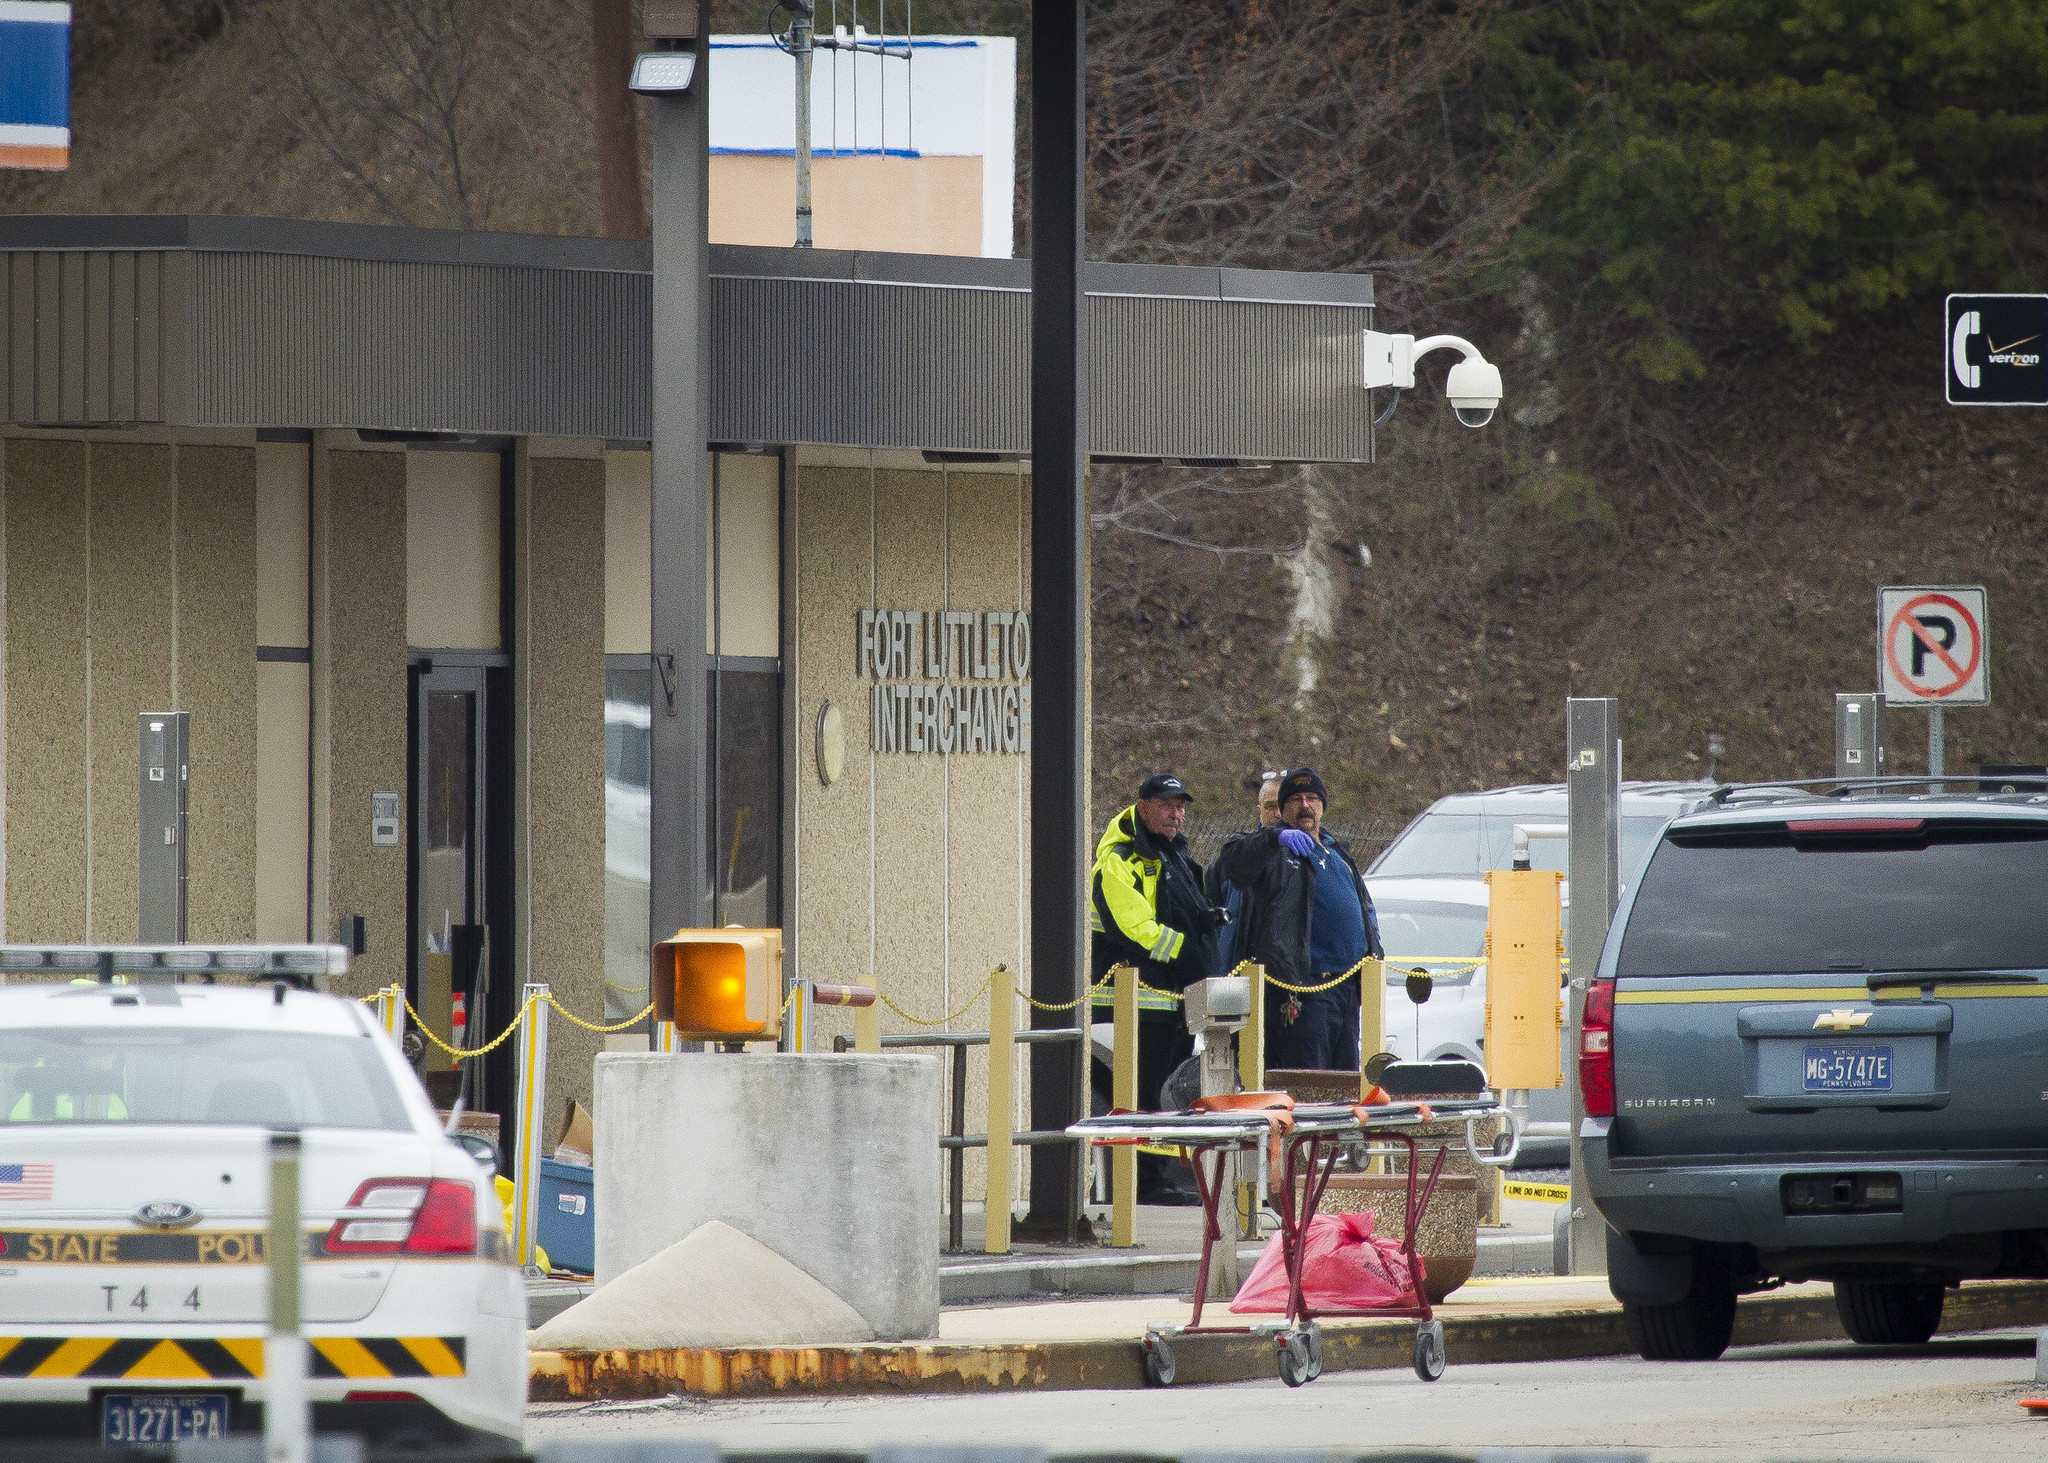 PICTURES Turnpike shooting in Fort Littleton  The